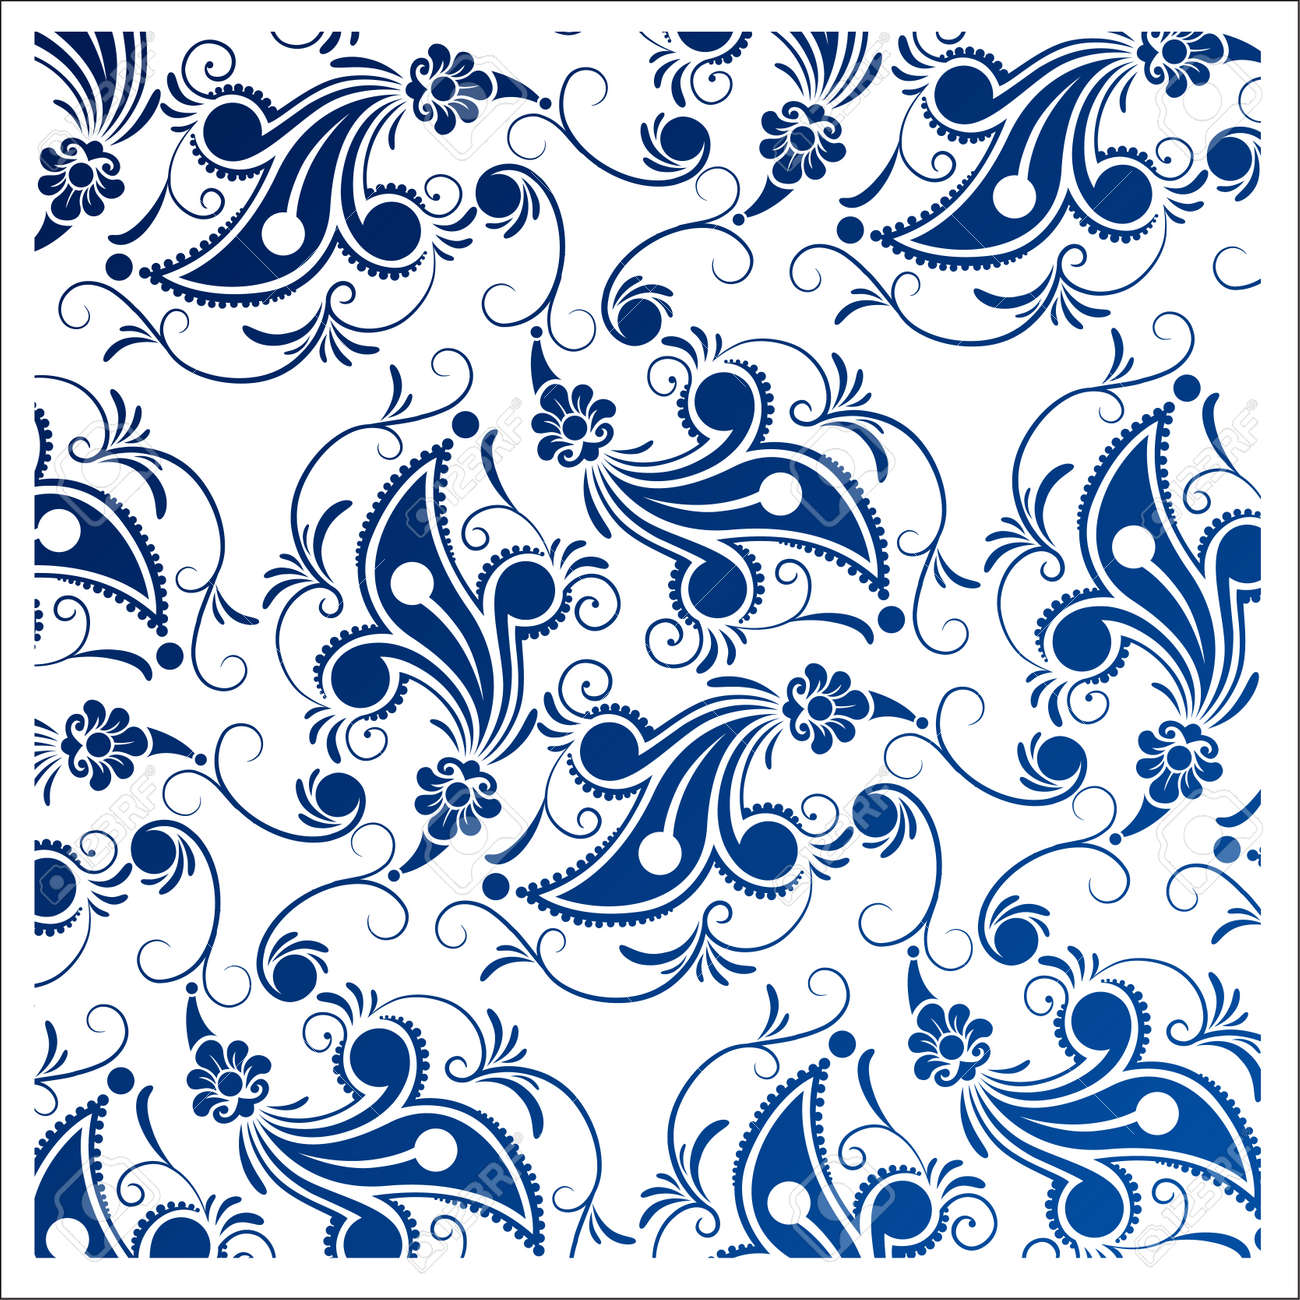 Batik Design Style Patterns Are The Same For Fabric Design